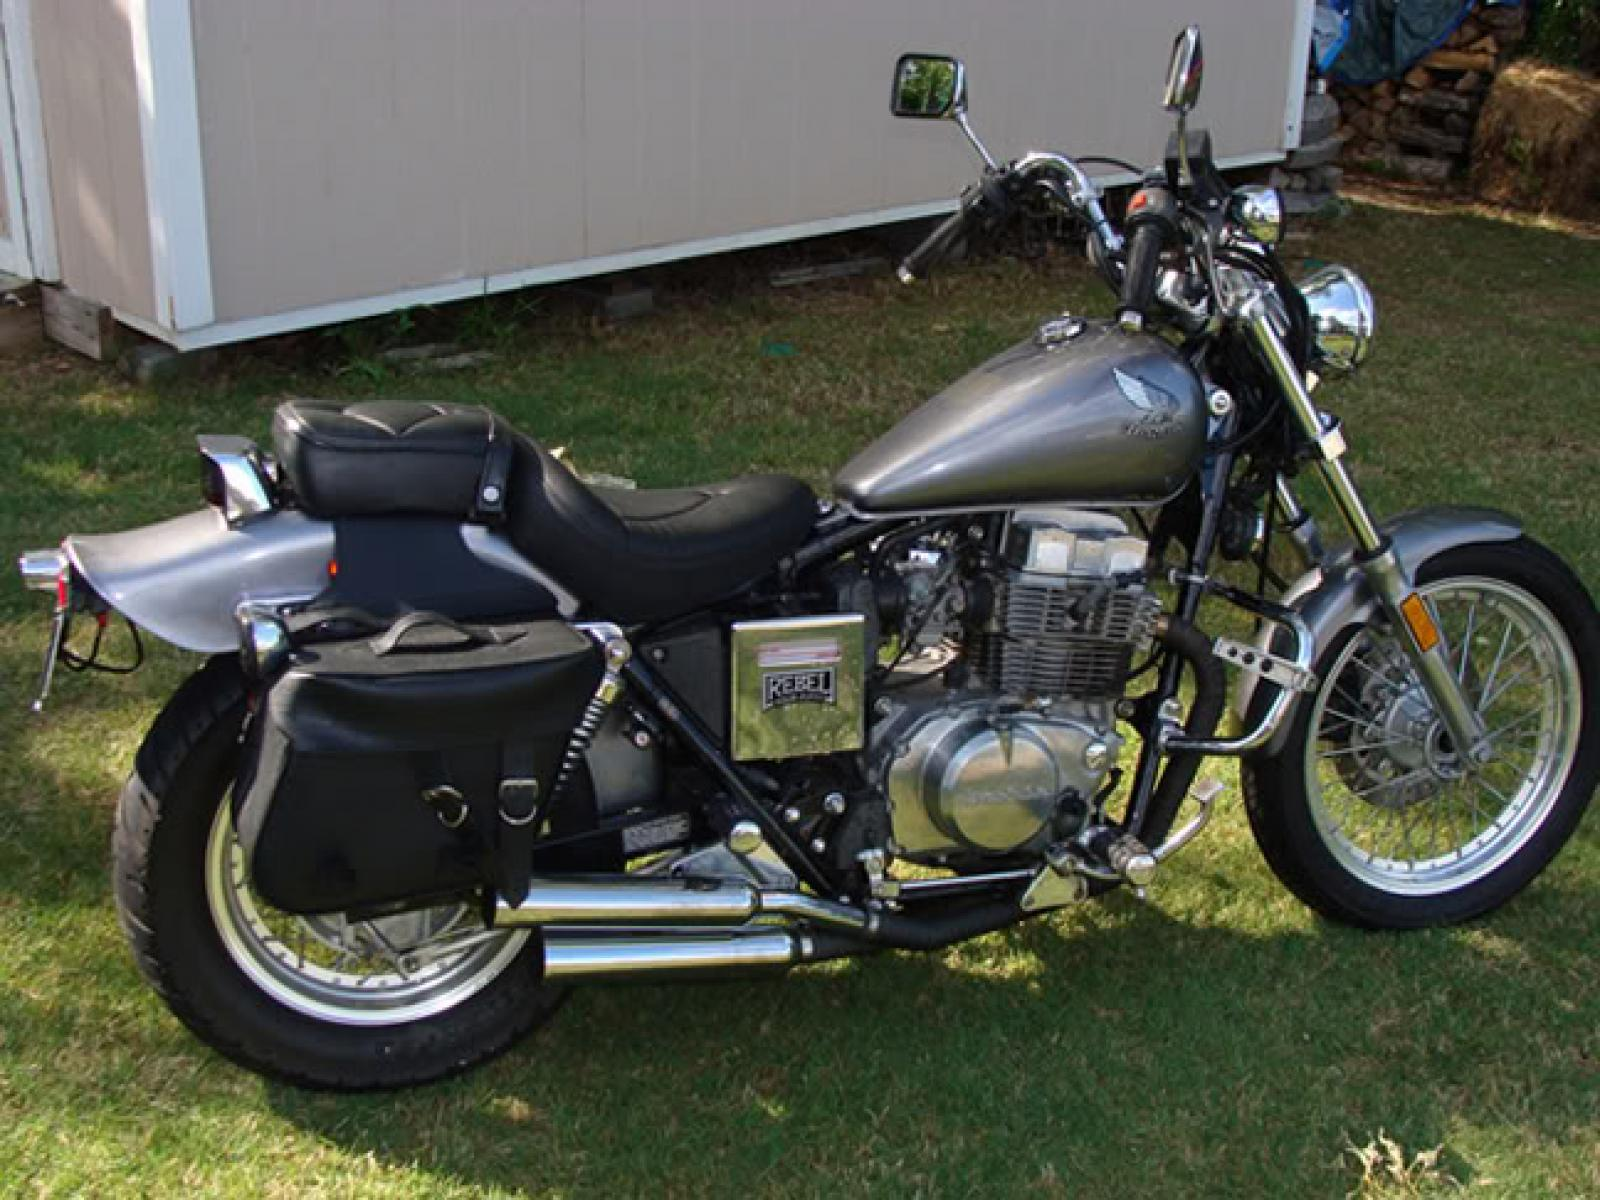 1986 Honda Rebel Wiring Diagram : 31 Wiring Diagram Images - Wiring on rebel wiring for 1953 ford, rebel wiring harness, rebel starter wire diagram, rebel ignition, rebel light switch wiring schematic, honda rebel 250 diagrams, rebel wiring harnesses,